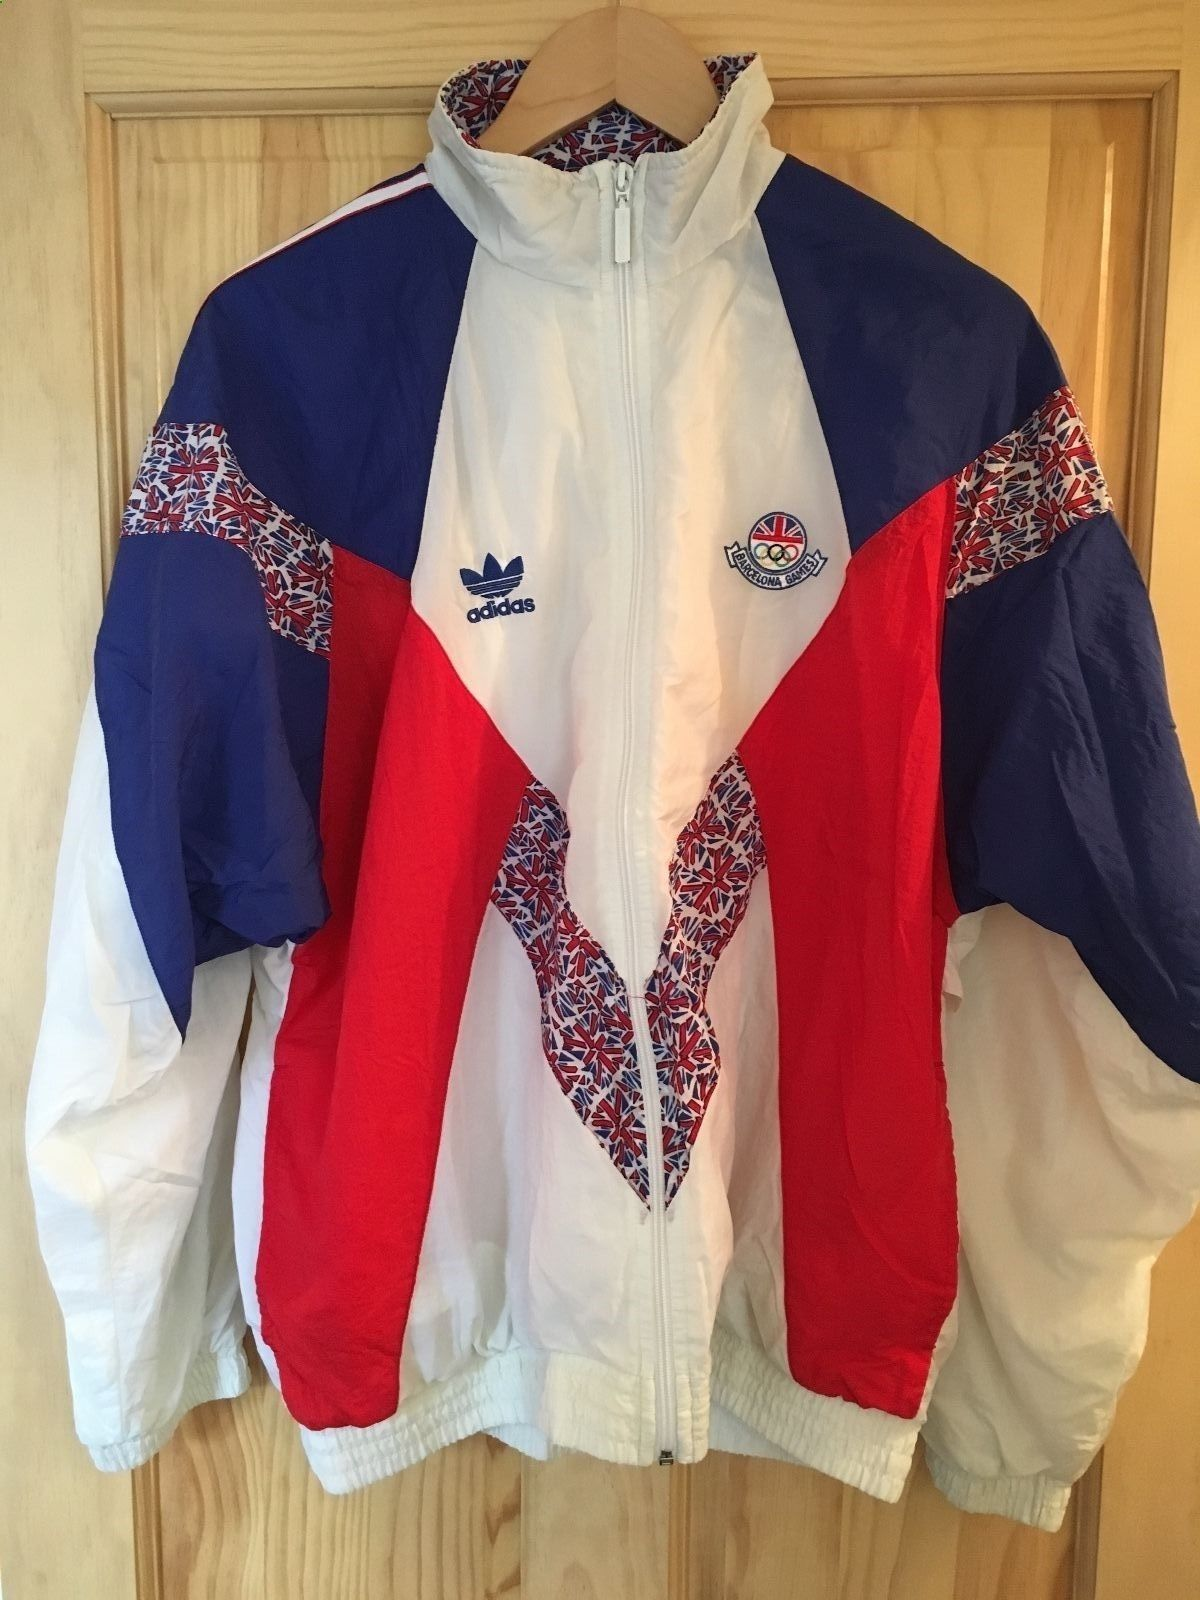 c98cabb46 Vintage ADIDAS Team GB Barcelona 92 Olympics......(Deadstock, 90s, British,  UK) | Clothing, Shoes Accessories, Womens Clothing, Coats Jackets | eBay!